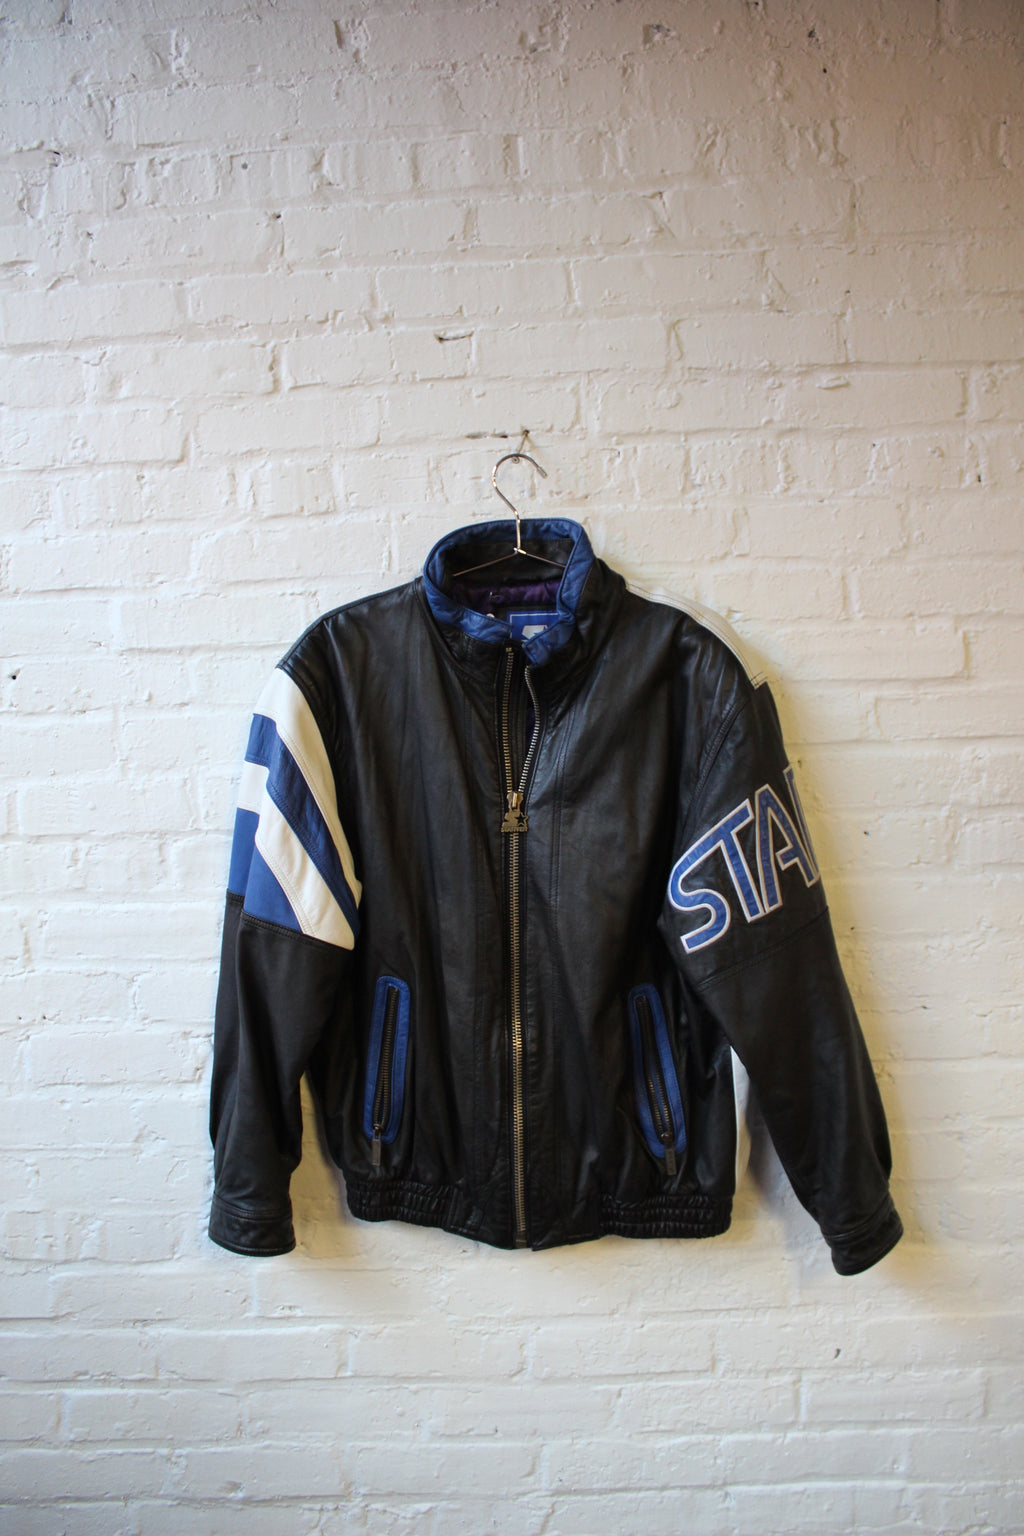 Black/Blue and White Starter Jacket